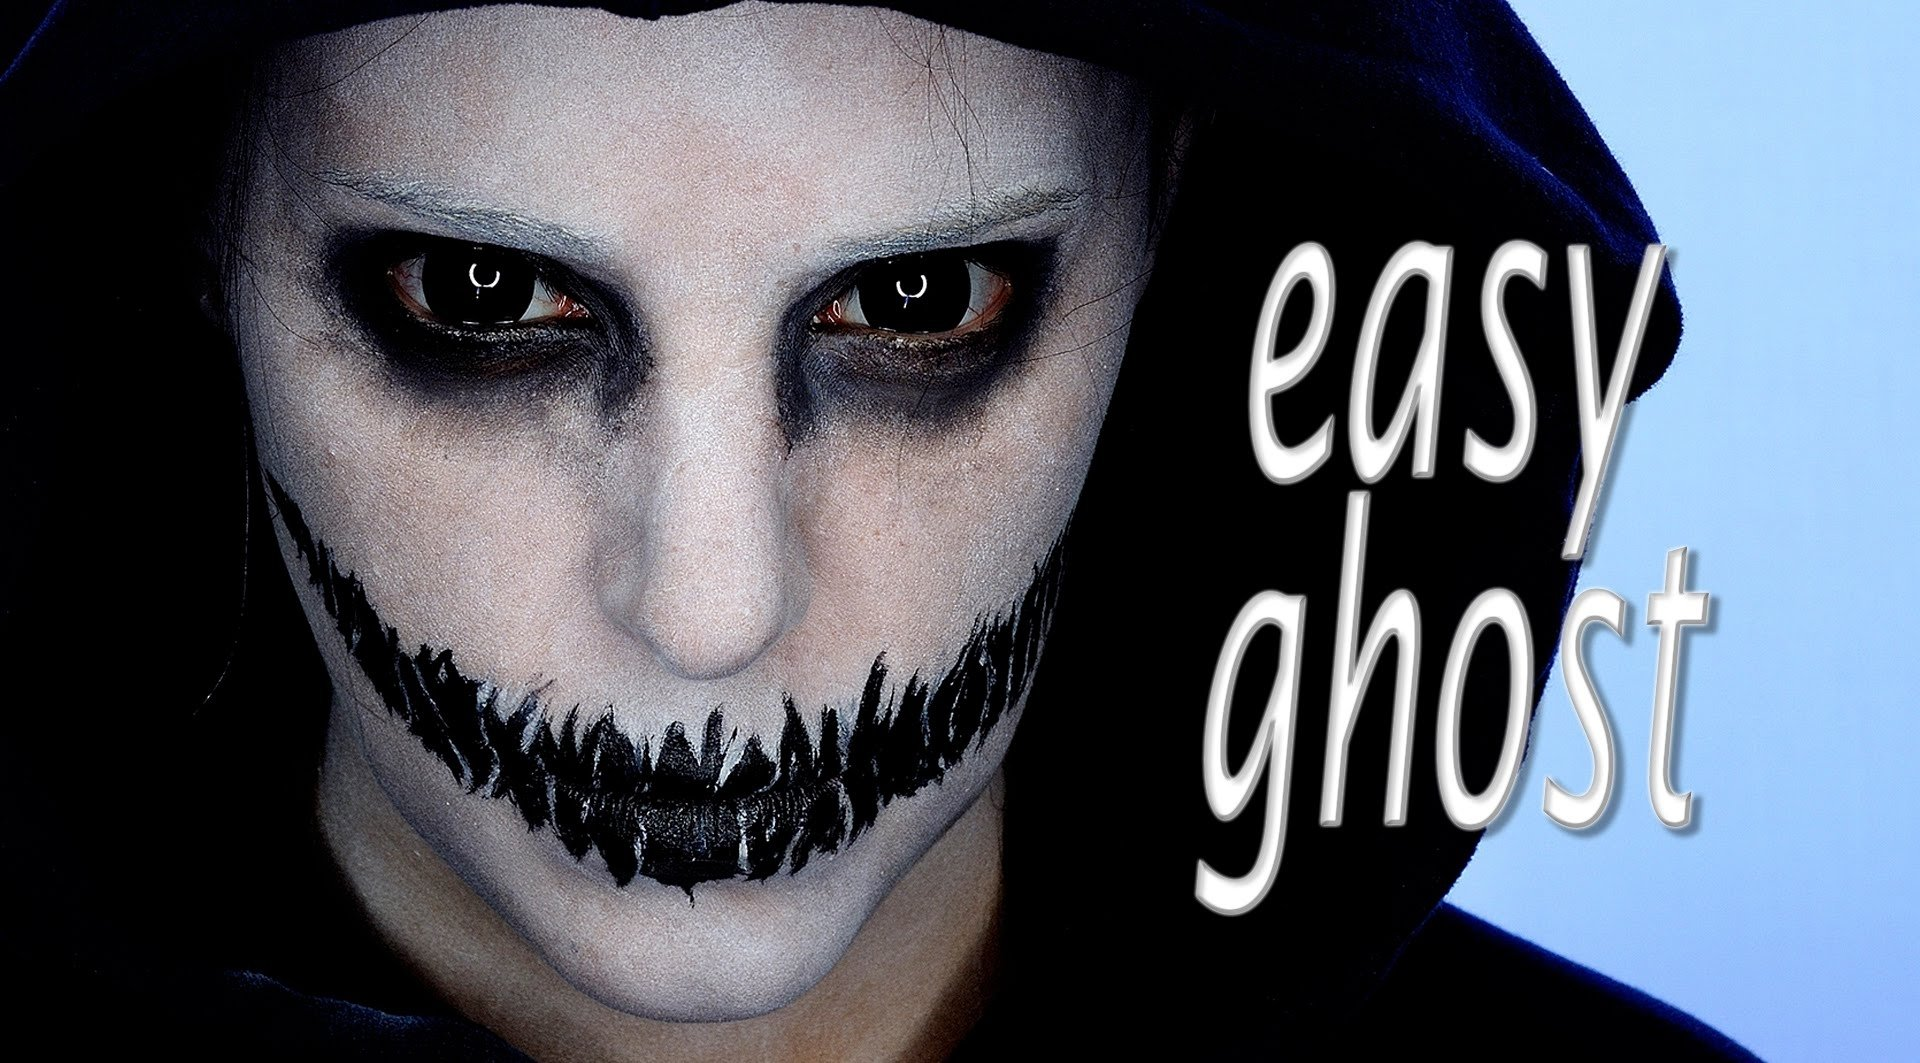 10 Best Halloween Makeup Ideas For Men easy ghosts halloween makeup tutorial silvia quiros youtube 2020